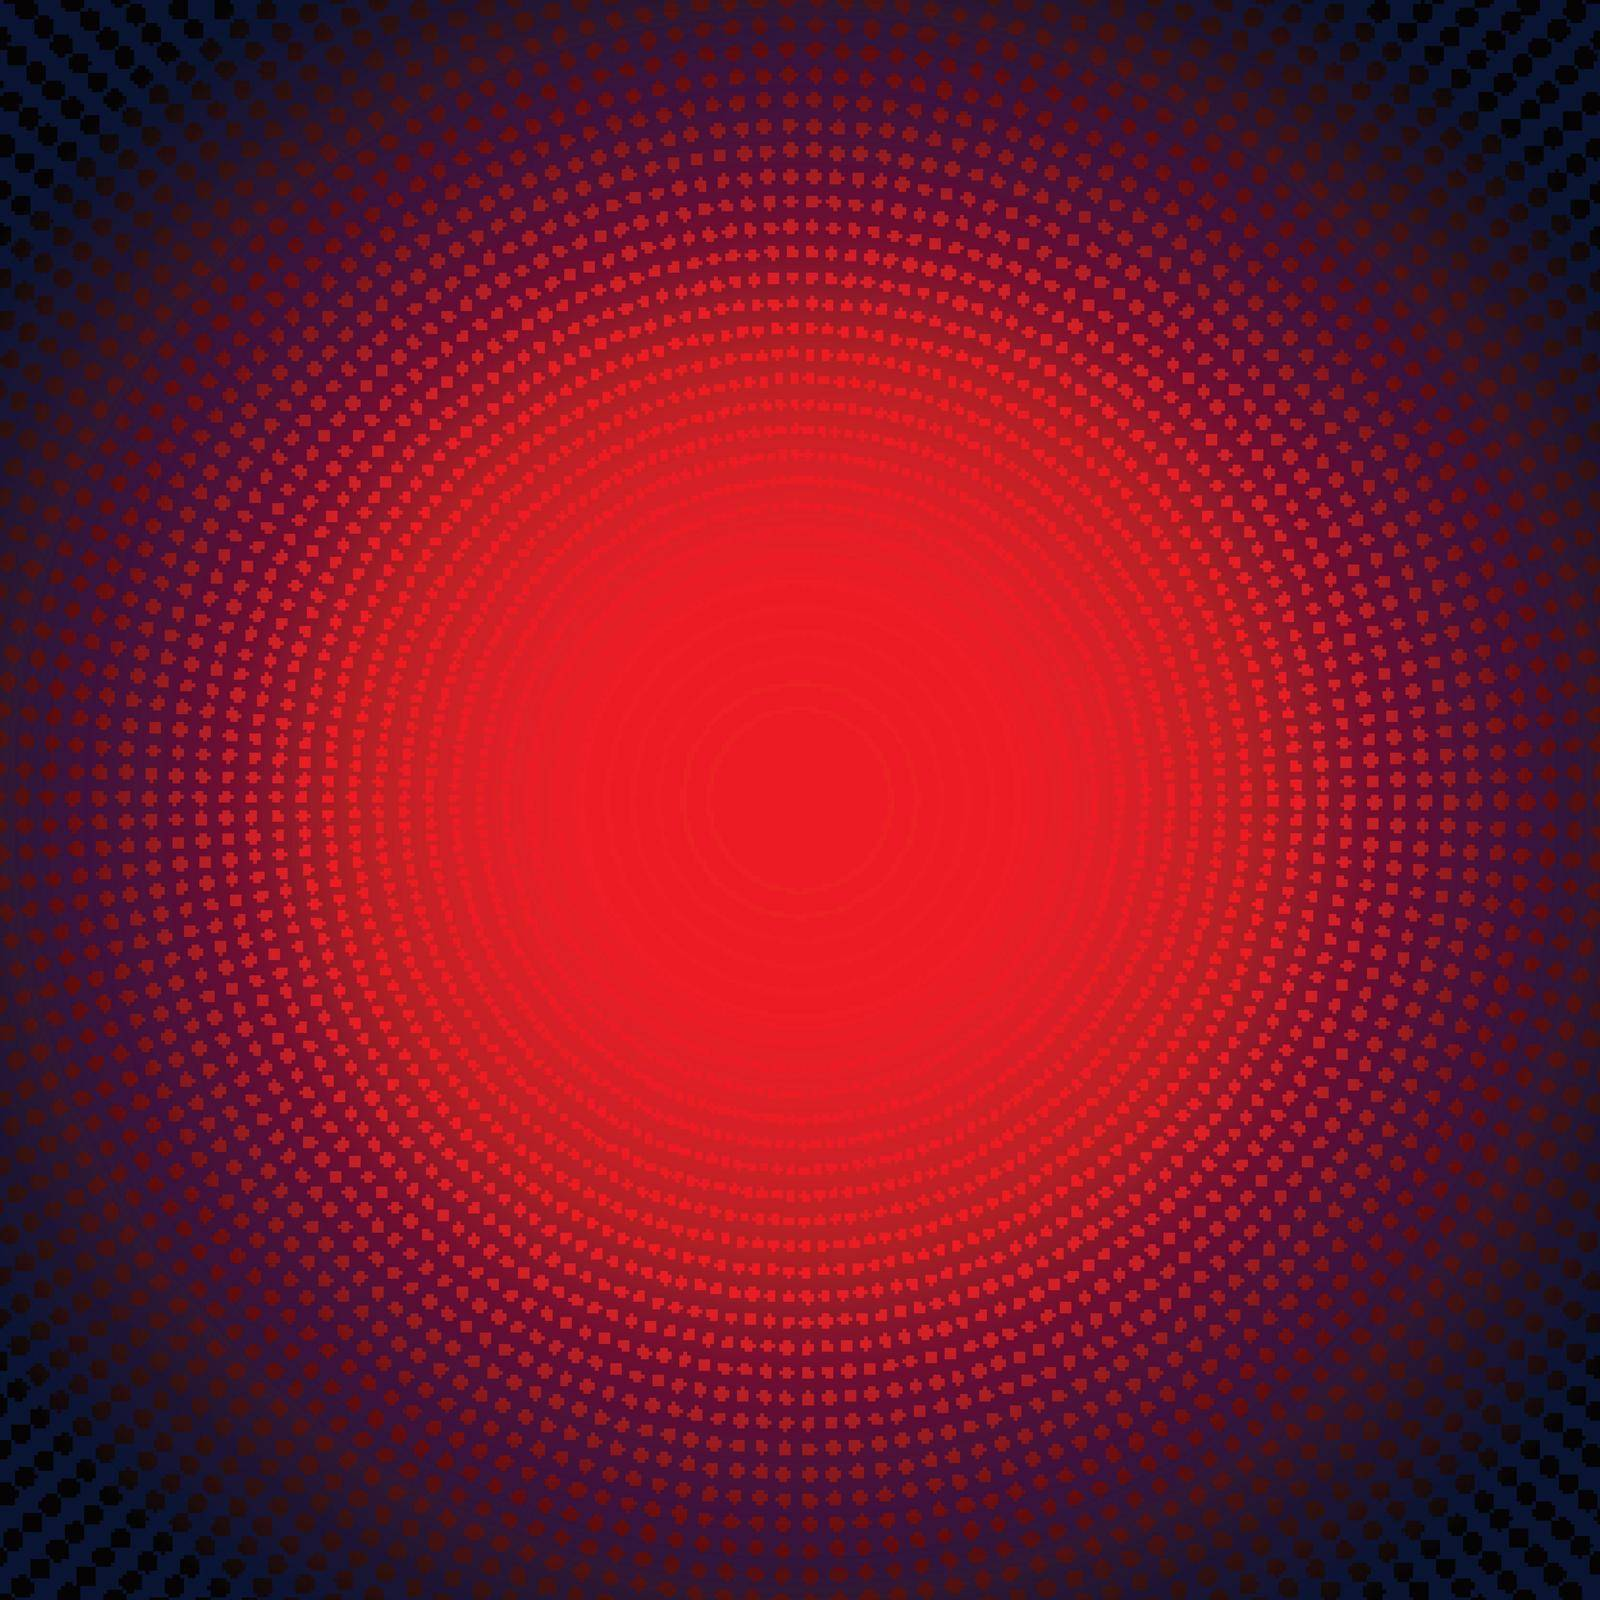 Technology digital concept futuristic red neon radial light burst effect on dark background. Dots pattern elements circles halftone style. Vector illustration